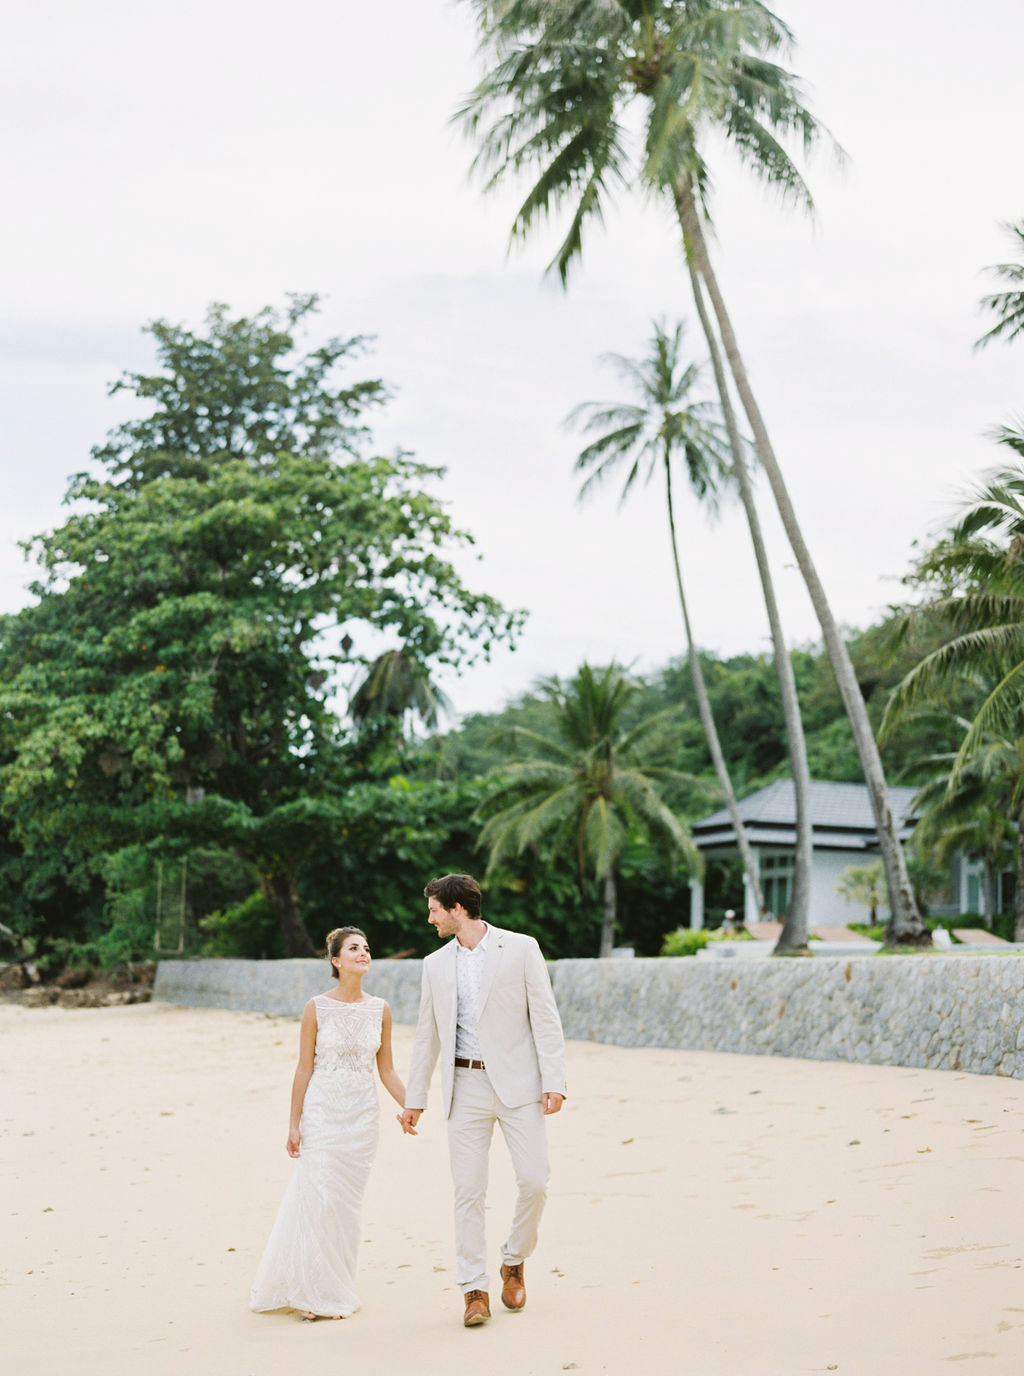 Thailand Wedding Venues Destination Koh Yao Noi By Fine Art Film Wedding Photographer Sheri McMahon-00046.jpg